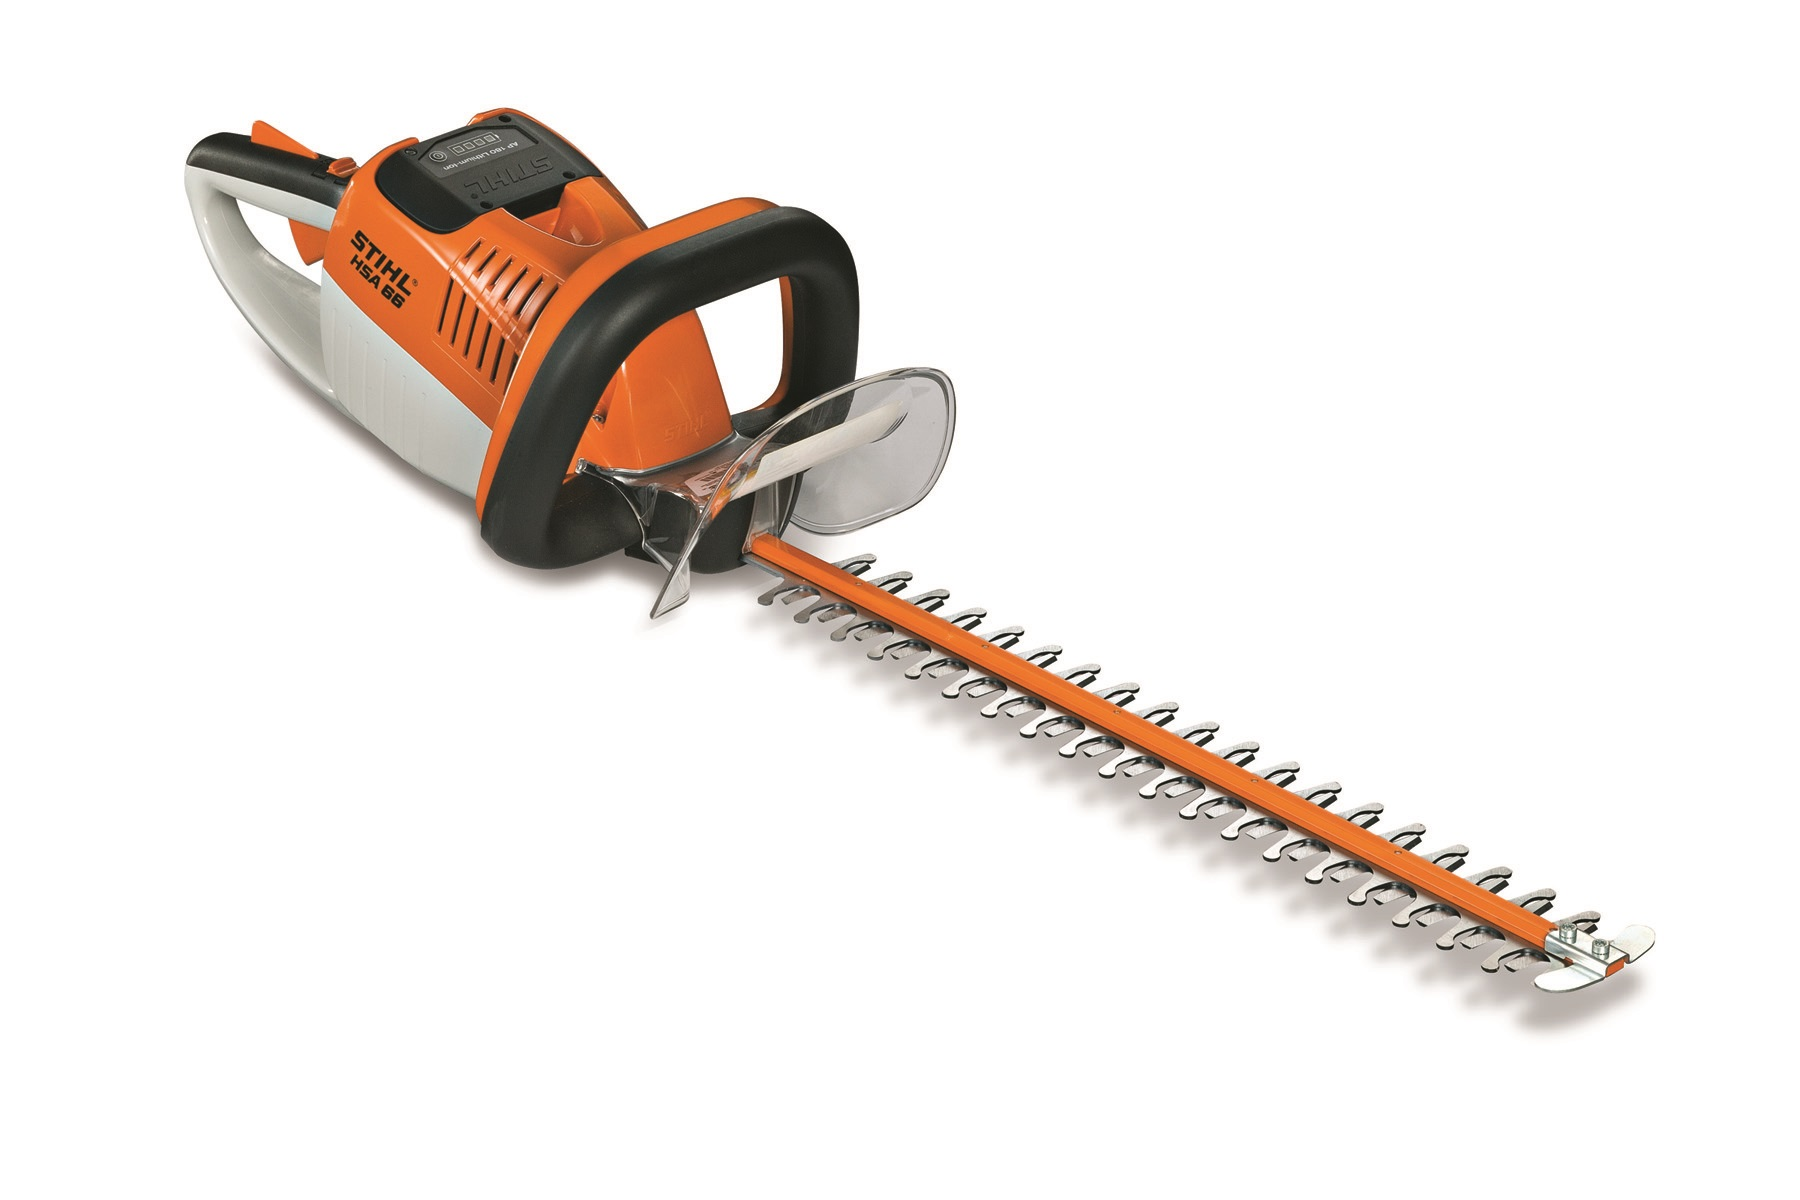 STIHL AP Series Battery Products - Sharpe's Lawn Equipment